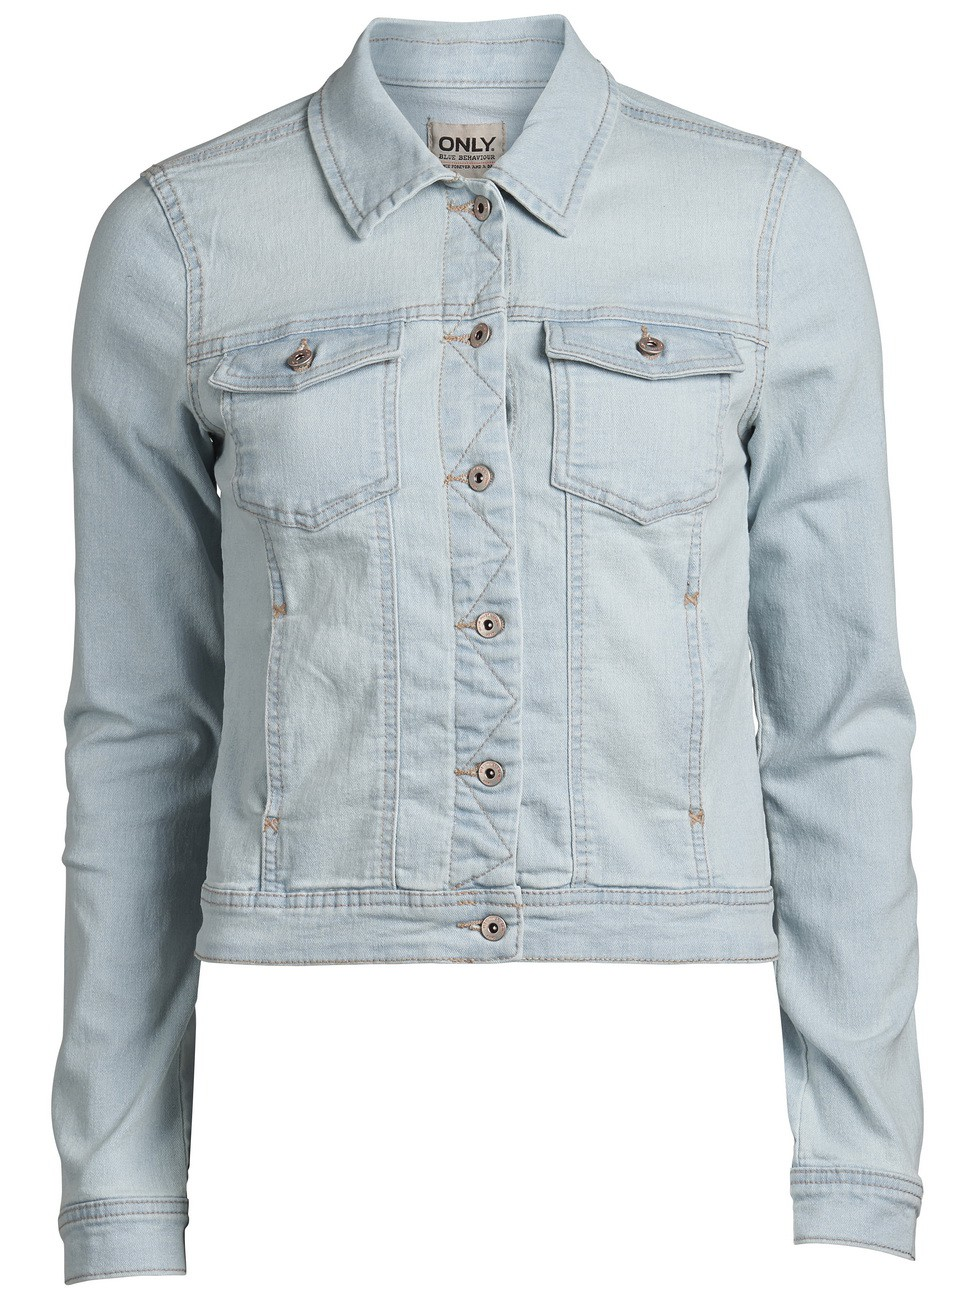 Only-Damen-Jeansjacke-WESTA-DENIM-JACKET-PIMSL13-NOOS-light-blue-neu